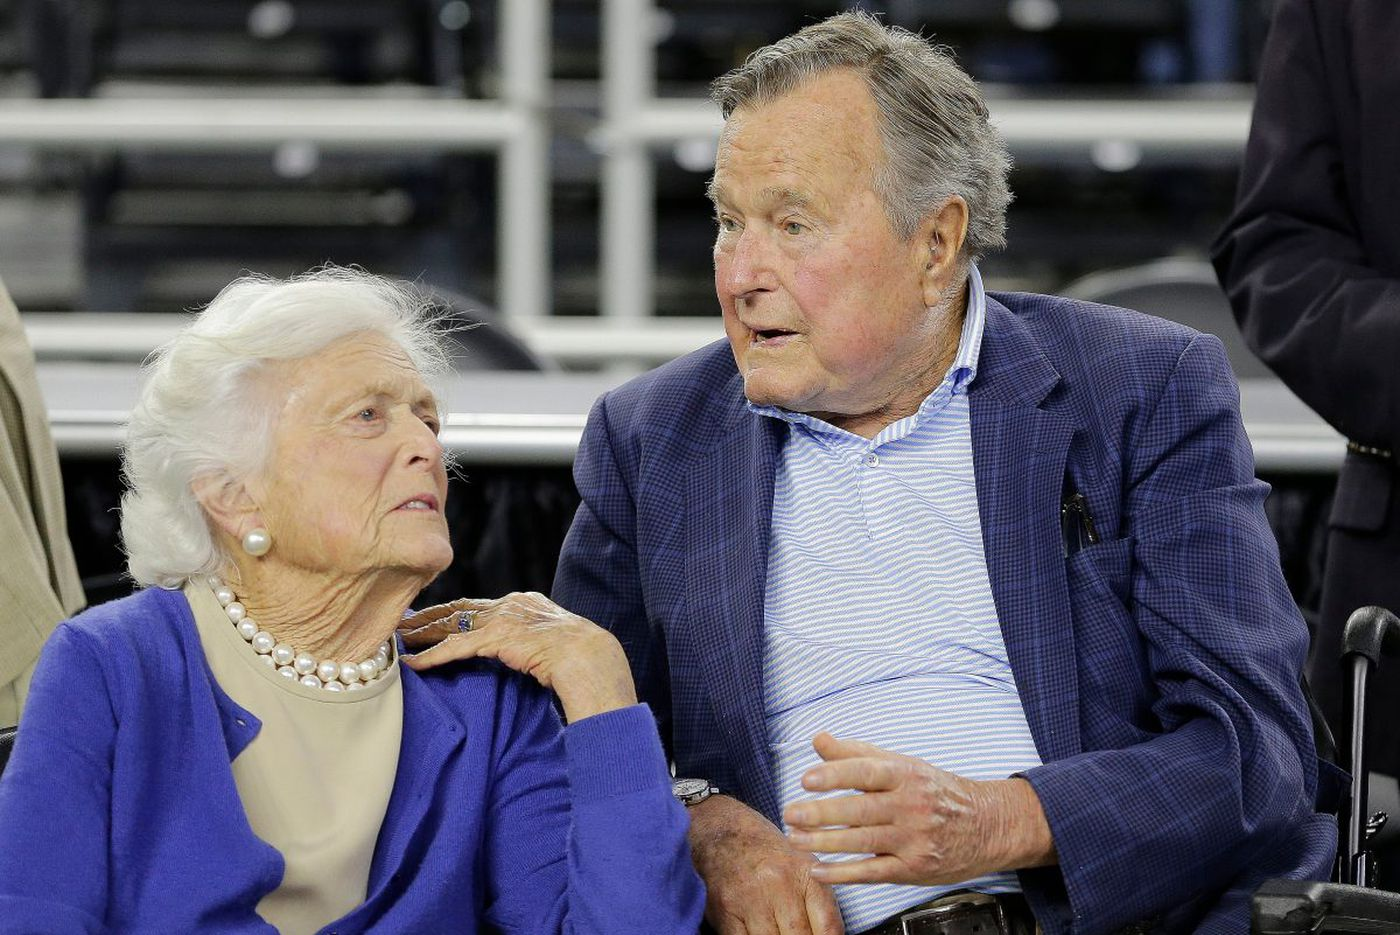 Barbara Bush's end-of-life decision stirs debate over 'comfort care'